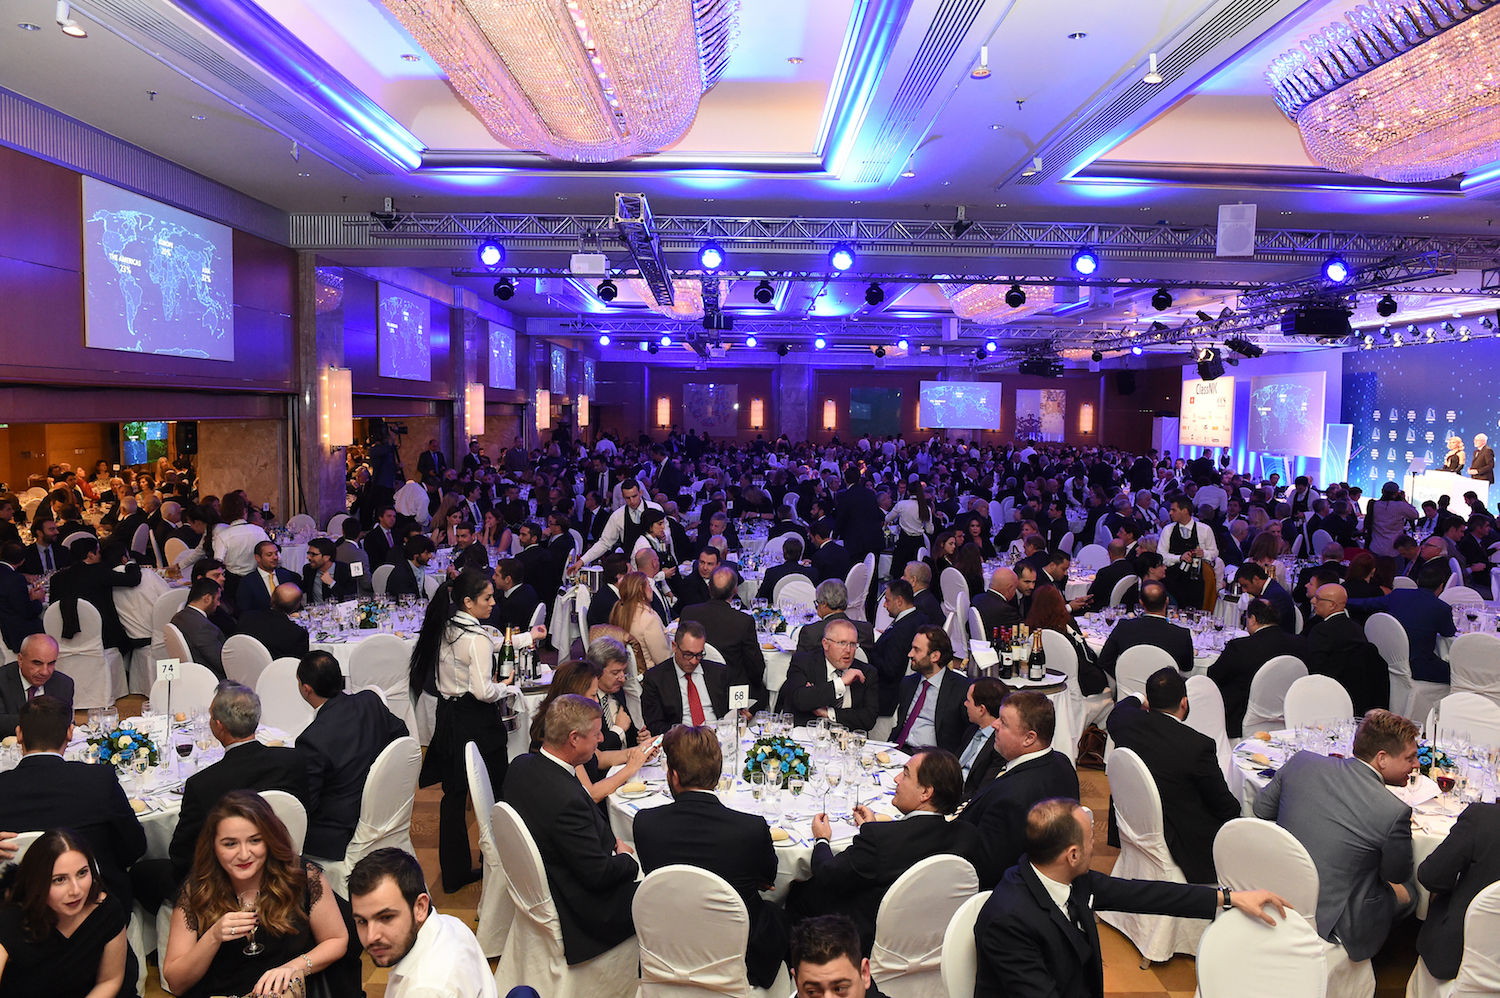 A record attendance of 1,200 guests attended the 2016 event